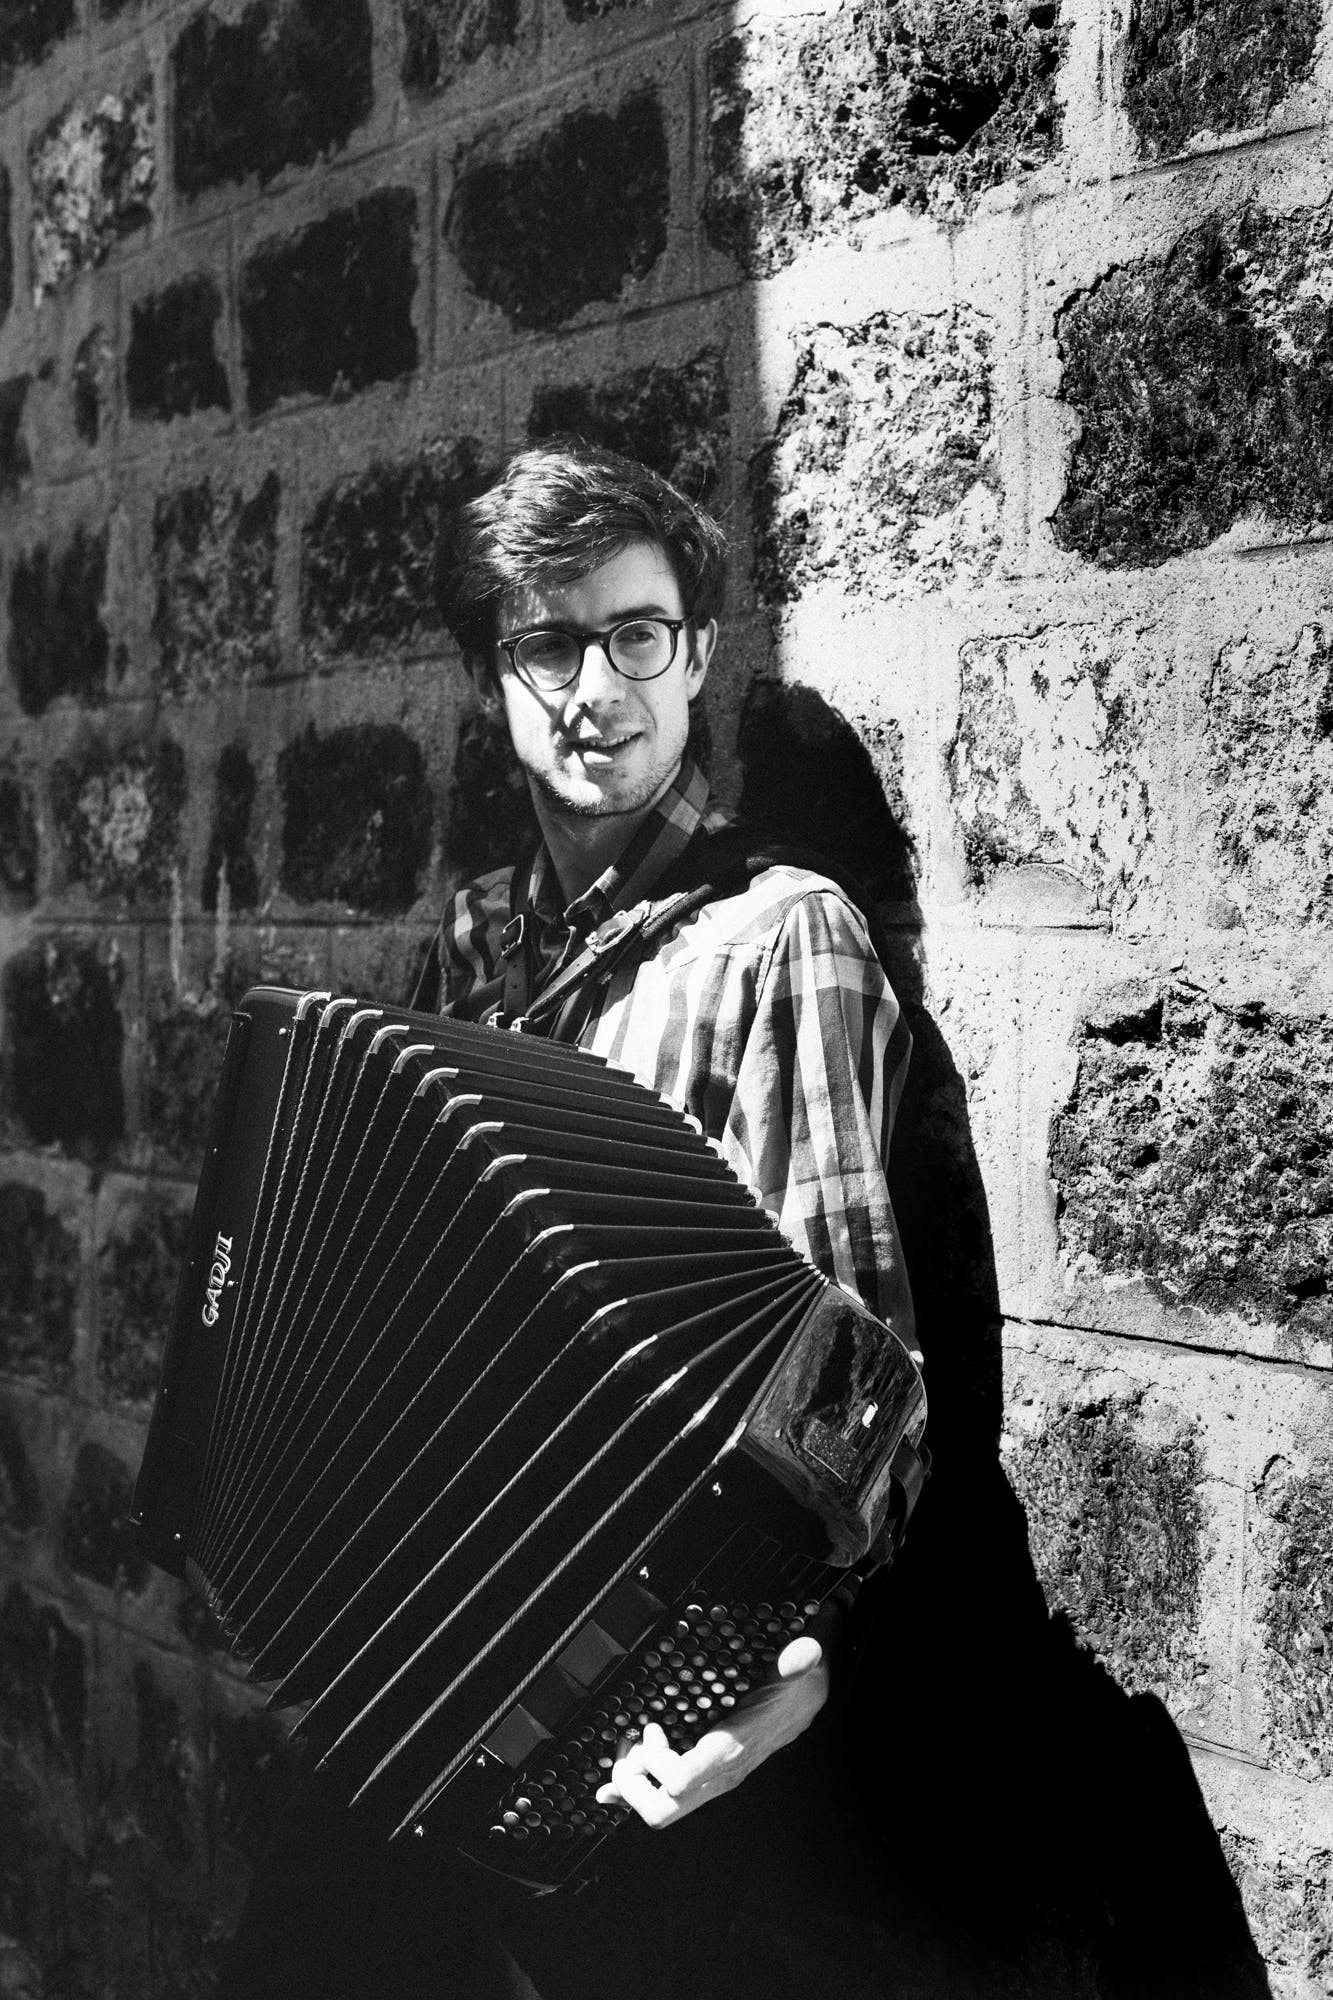 Accordion lessons in Paris for home tuition